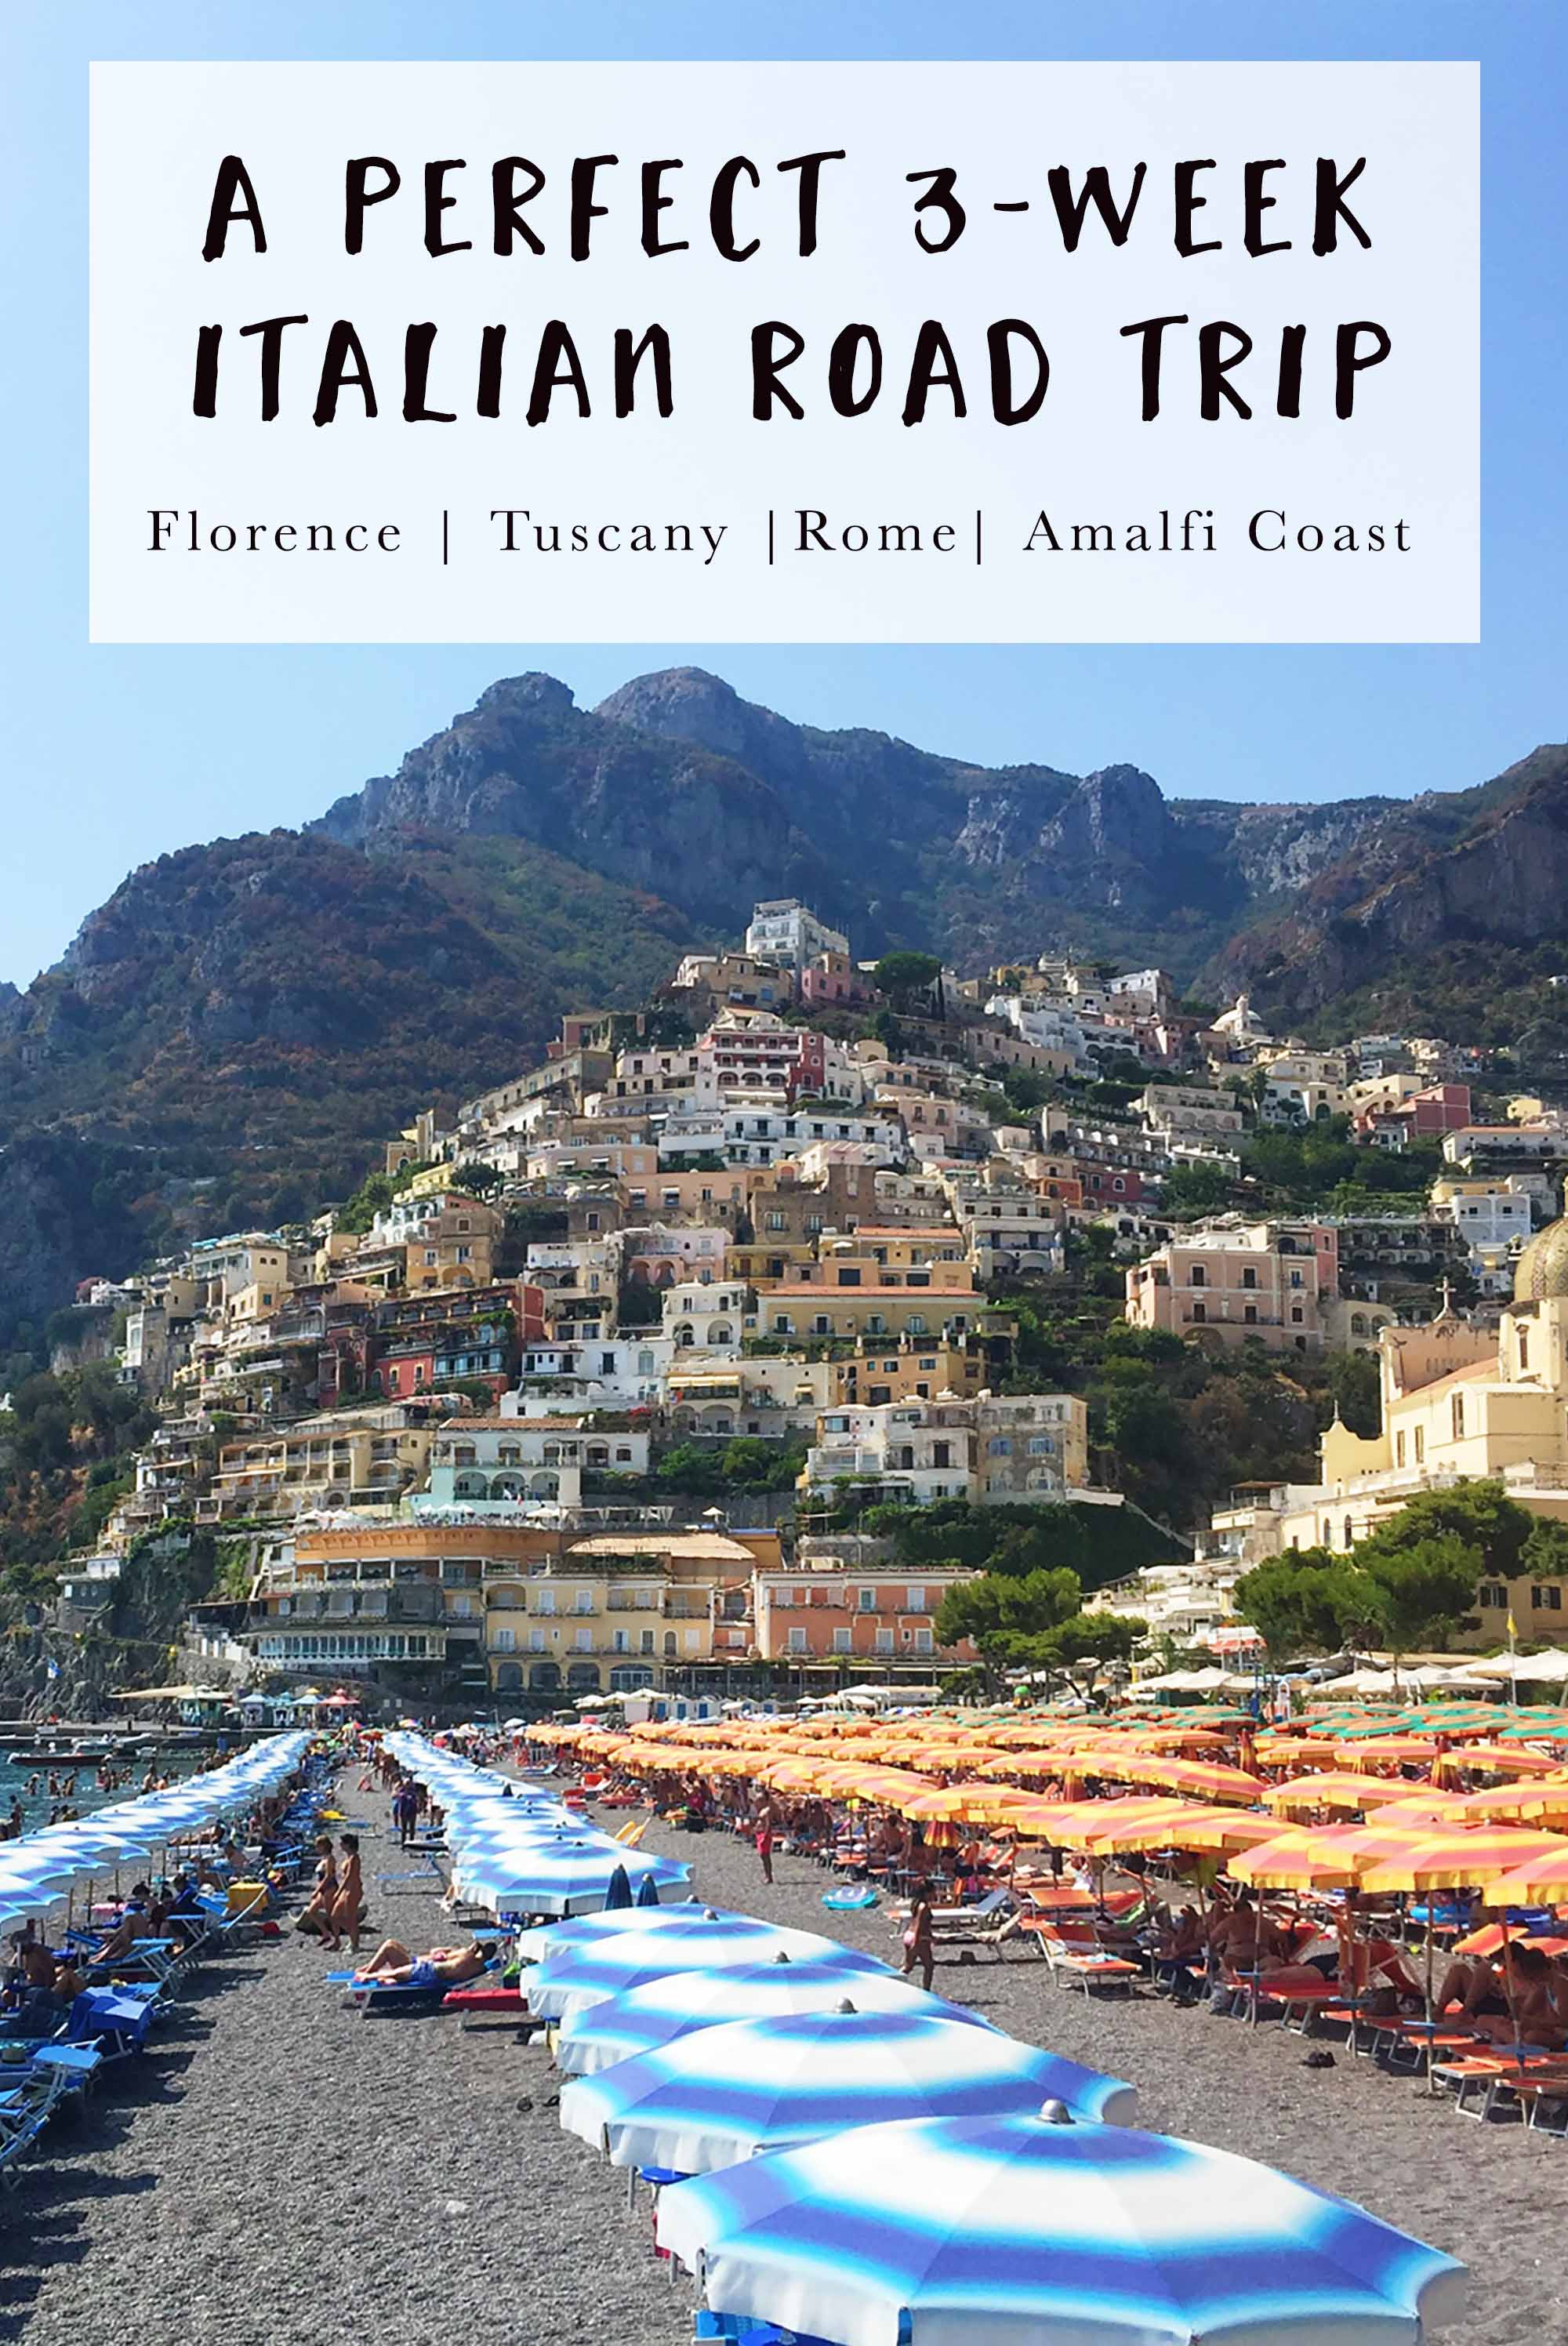 An Italian road trip: from Florence to the Amalfi coast on make your own disney world map, make your own pirate treasure map, chicken road map, art road map, make your own school map, recipe road map, healthy road map, vintage road map, graduation road map, photography road map, your own driving route map, diy road map, lego road map, make your own weather map, make your own route map, christmas road map, make your own walking map, make your own snow map, travel road map, organic road map,